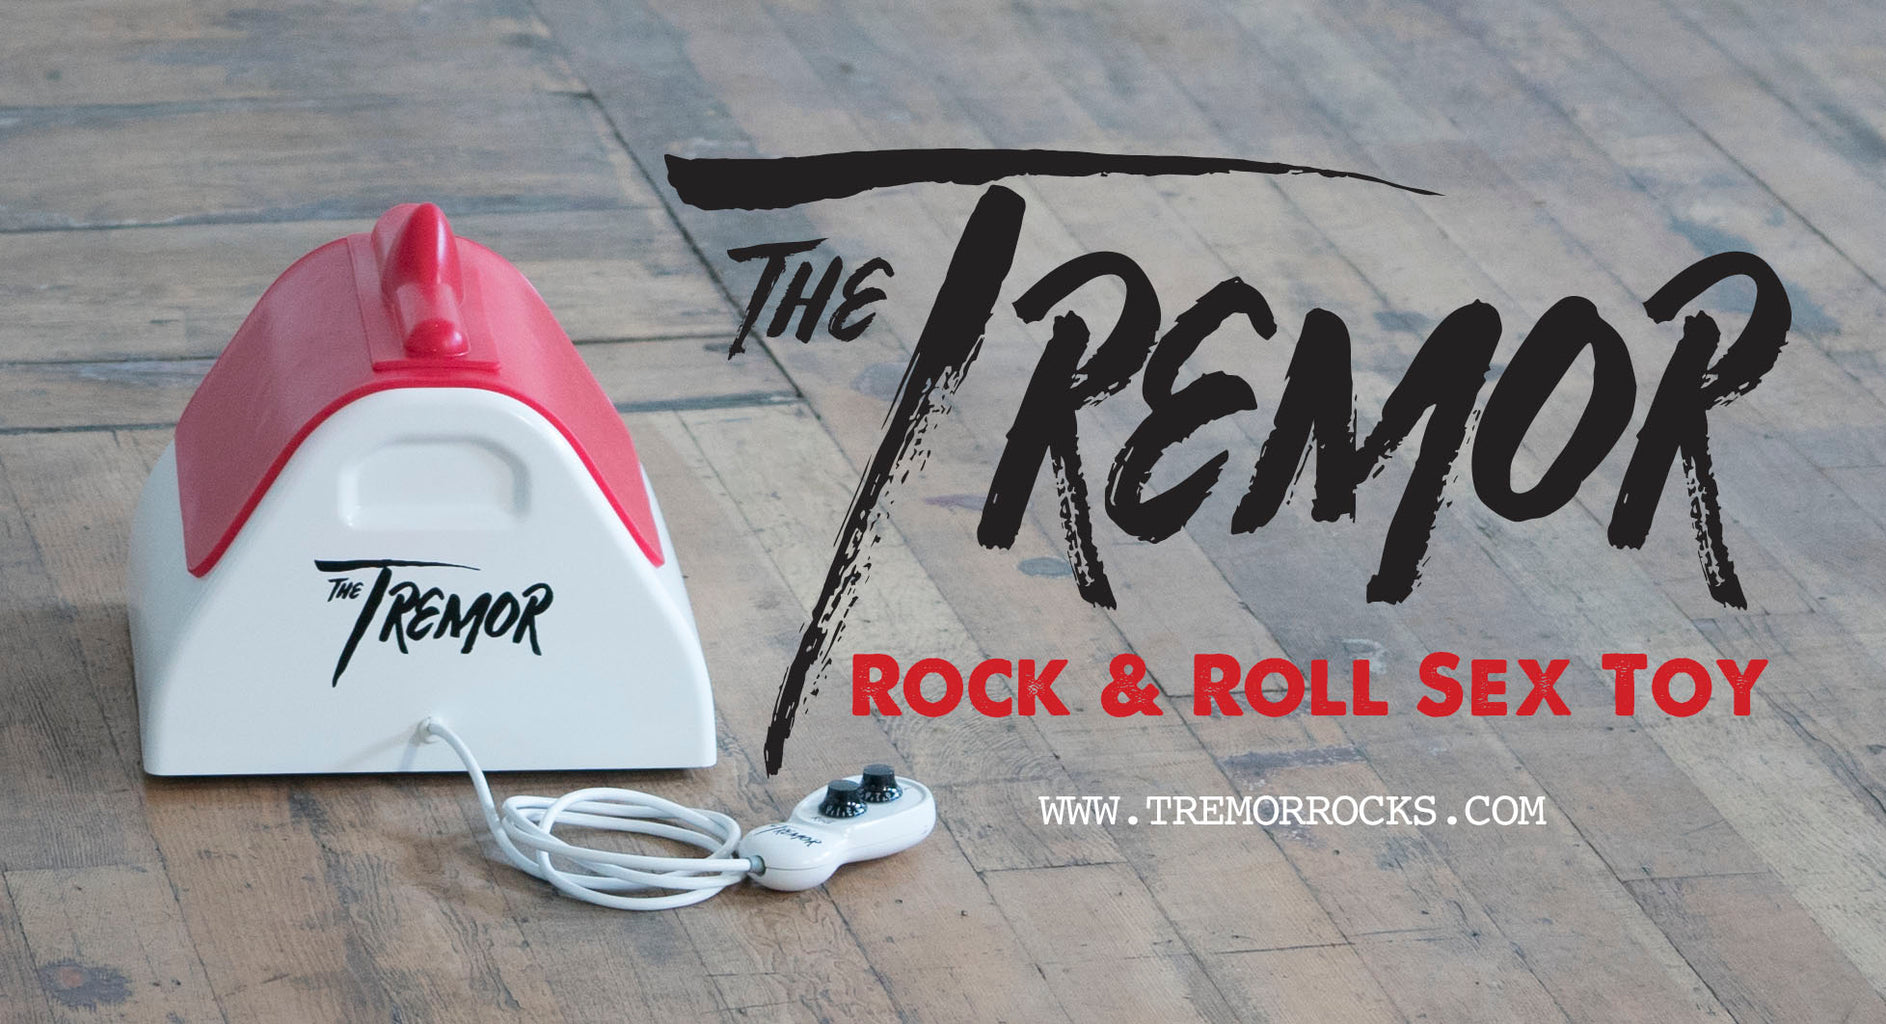 Tremor Rock and Roll Sex Toy